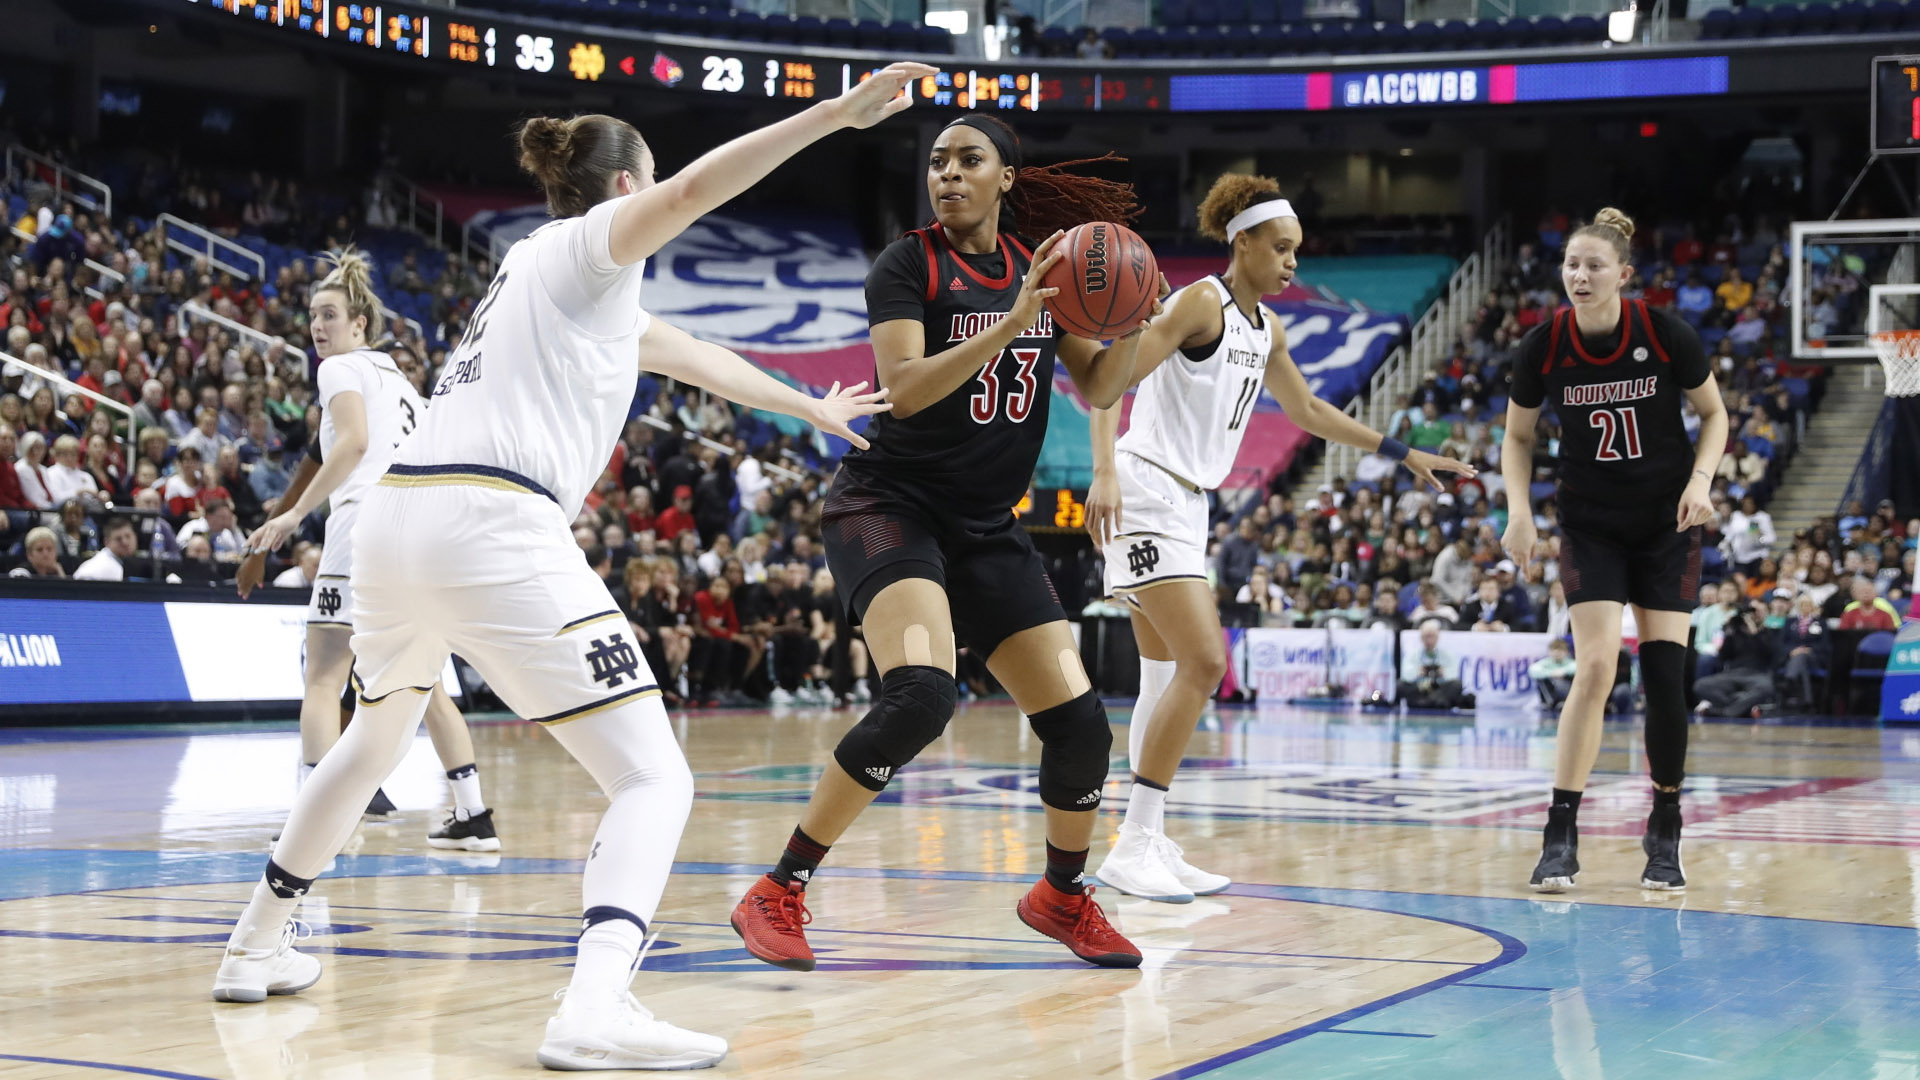 No 3 Louisville Falls To No 4 Notre Dame In Acc Championship University Of Louisville Athletics